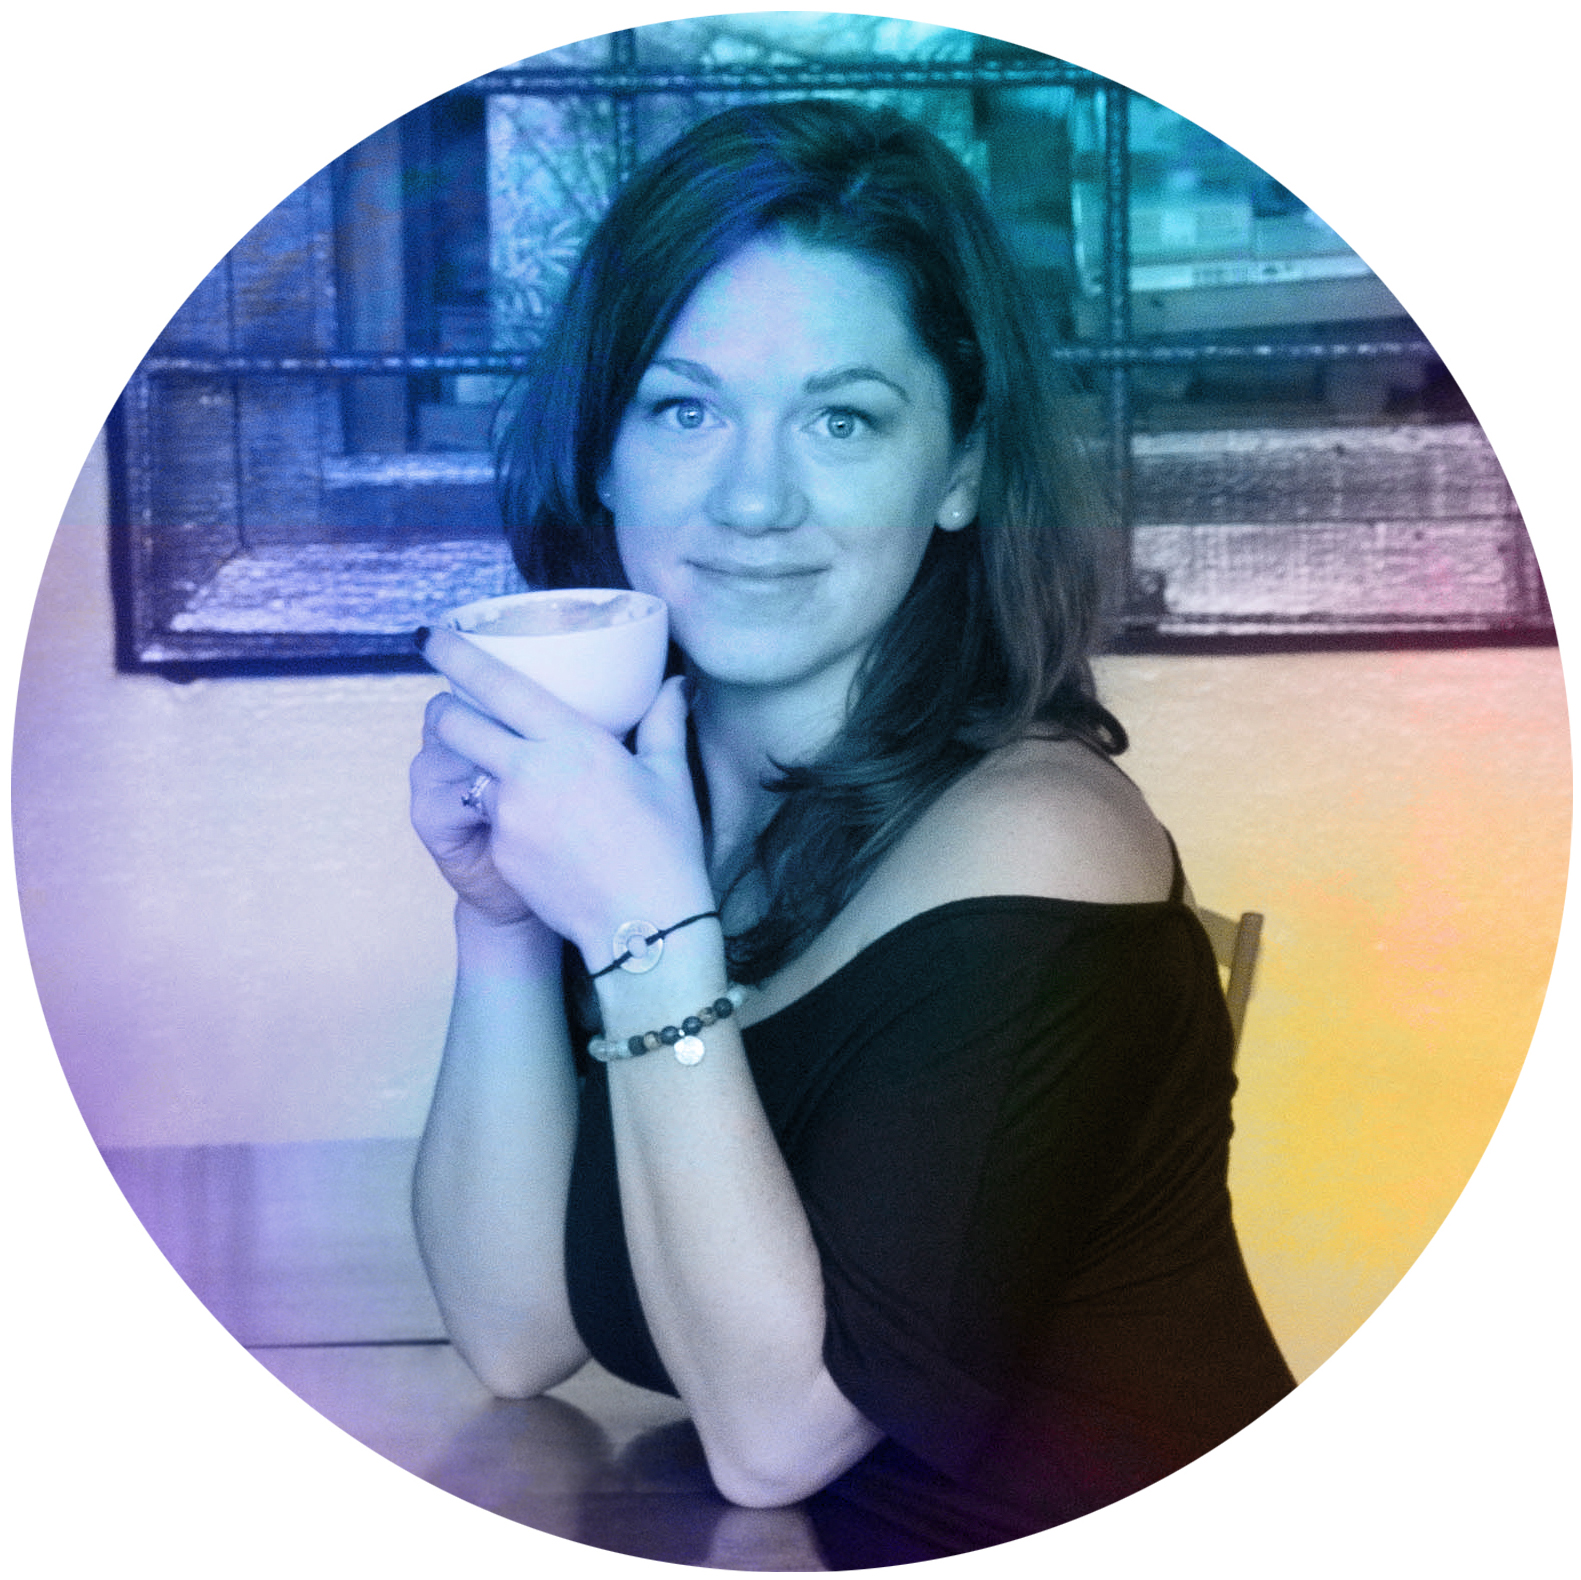 Marcia Schabel | Intuitive Brand Designer | Brand Partnership | Design your brand with soul | Learn to live a life you love | Take care of Earth